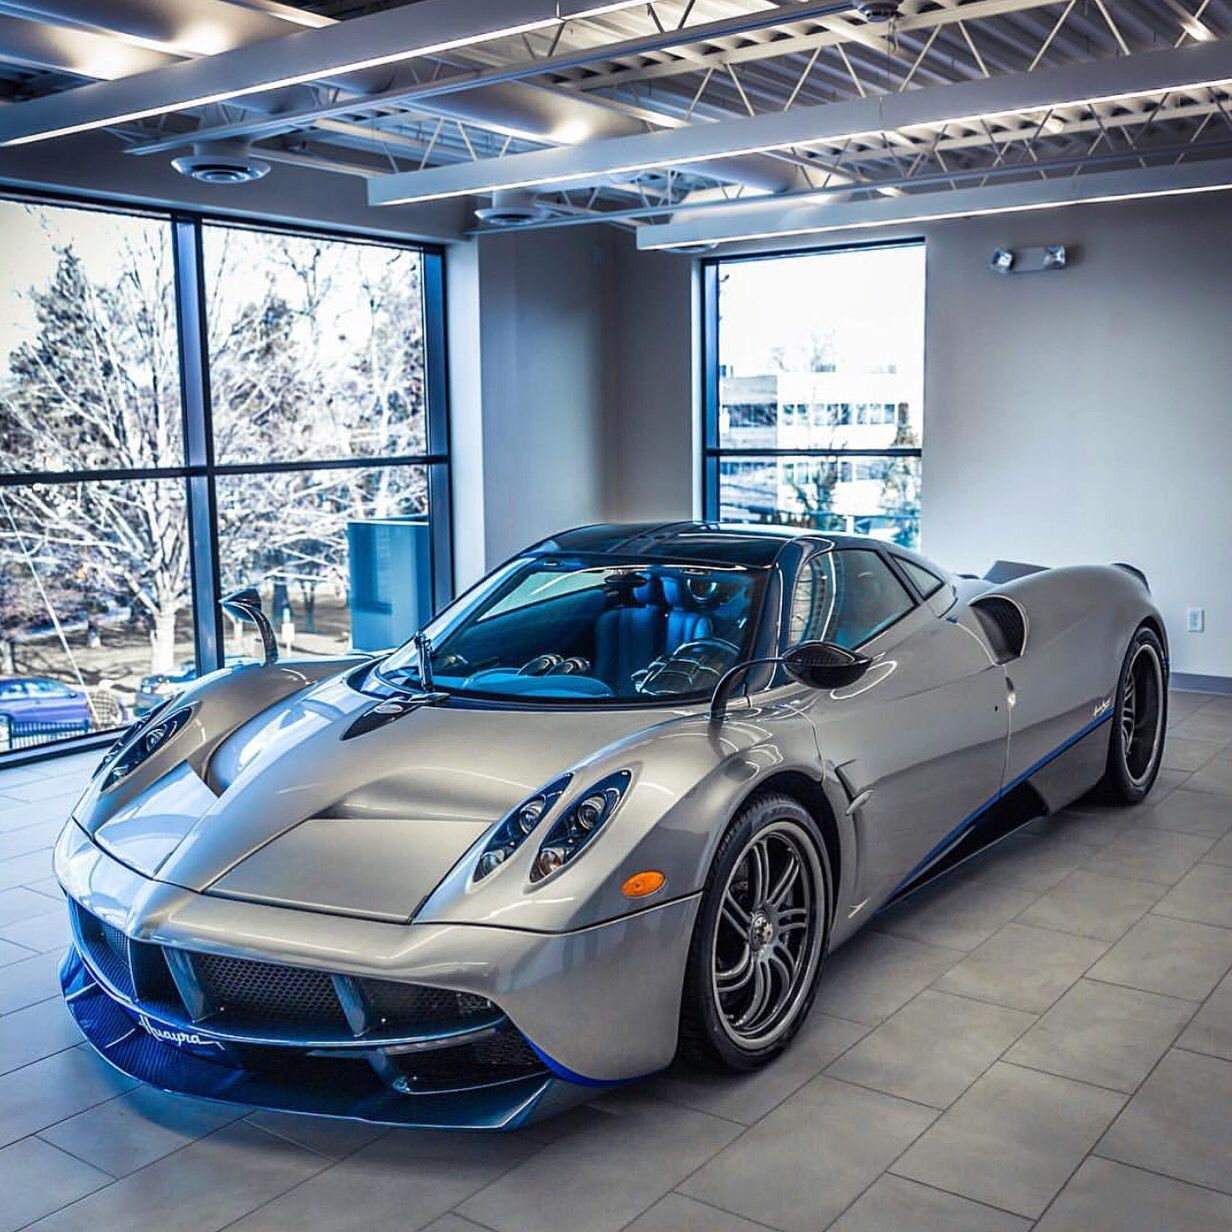 Pagani Huayra Painted In Silver W/ Exposed Blue Carbon Fiber And Blue  Accents Photo Taken